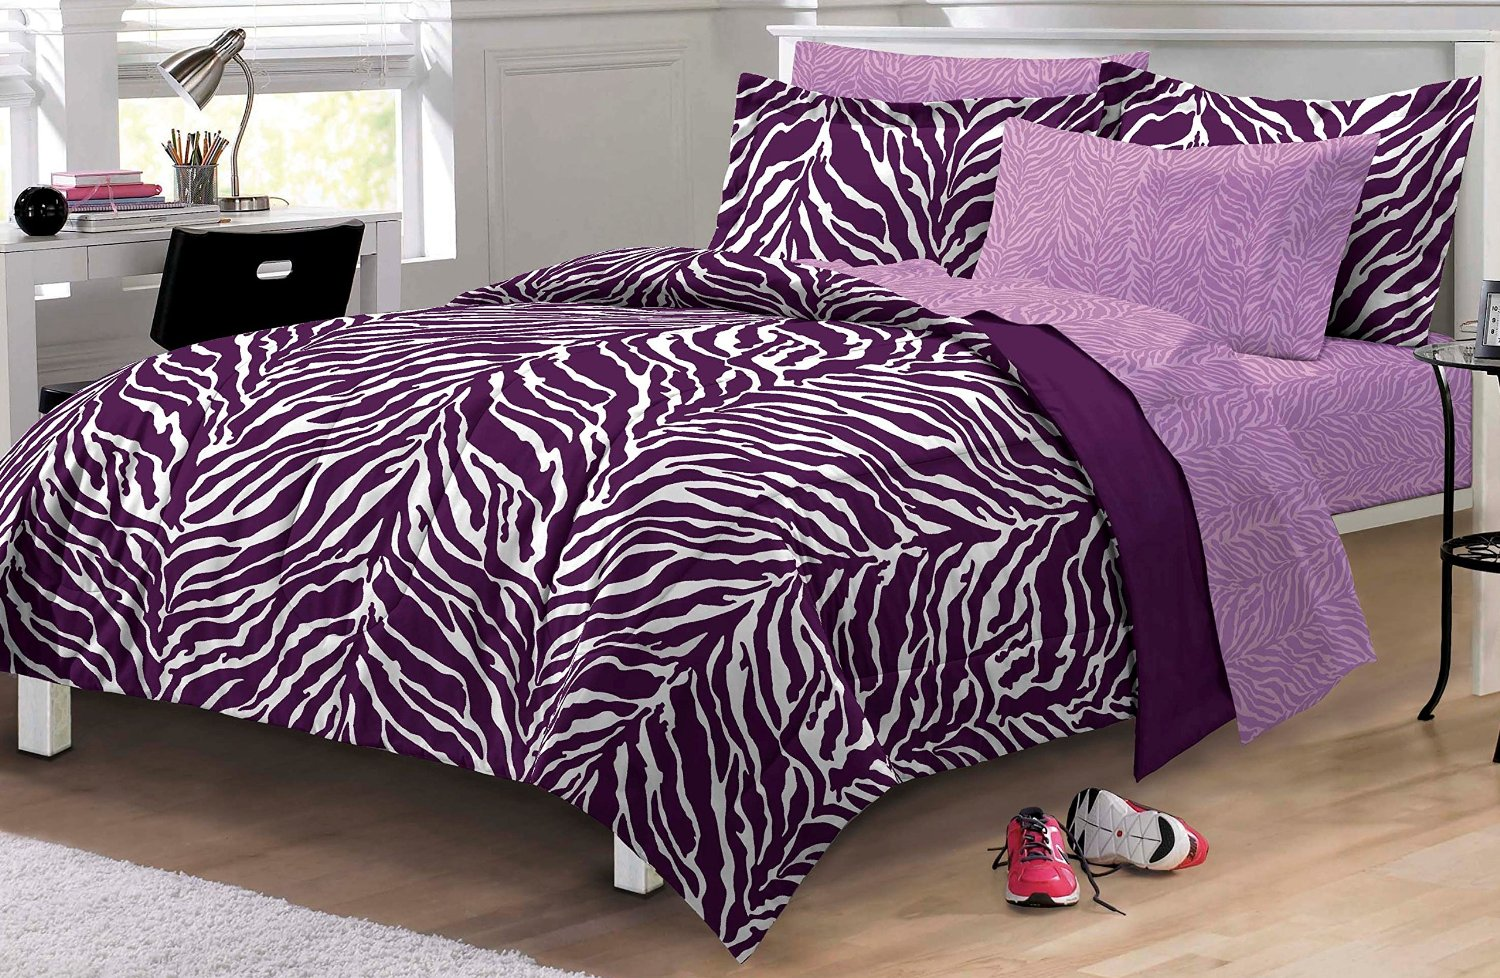 Purple bedding for teenage girls - Uber Cheap Funky Purple Zebra Print Comforter Sheet Set For Tween And Teen Girls